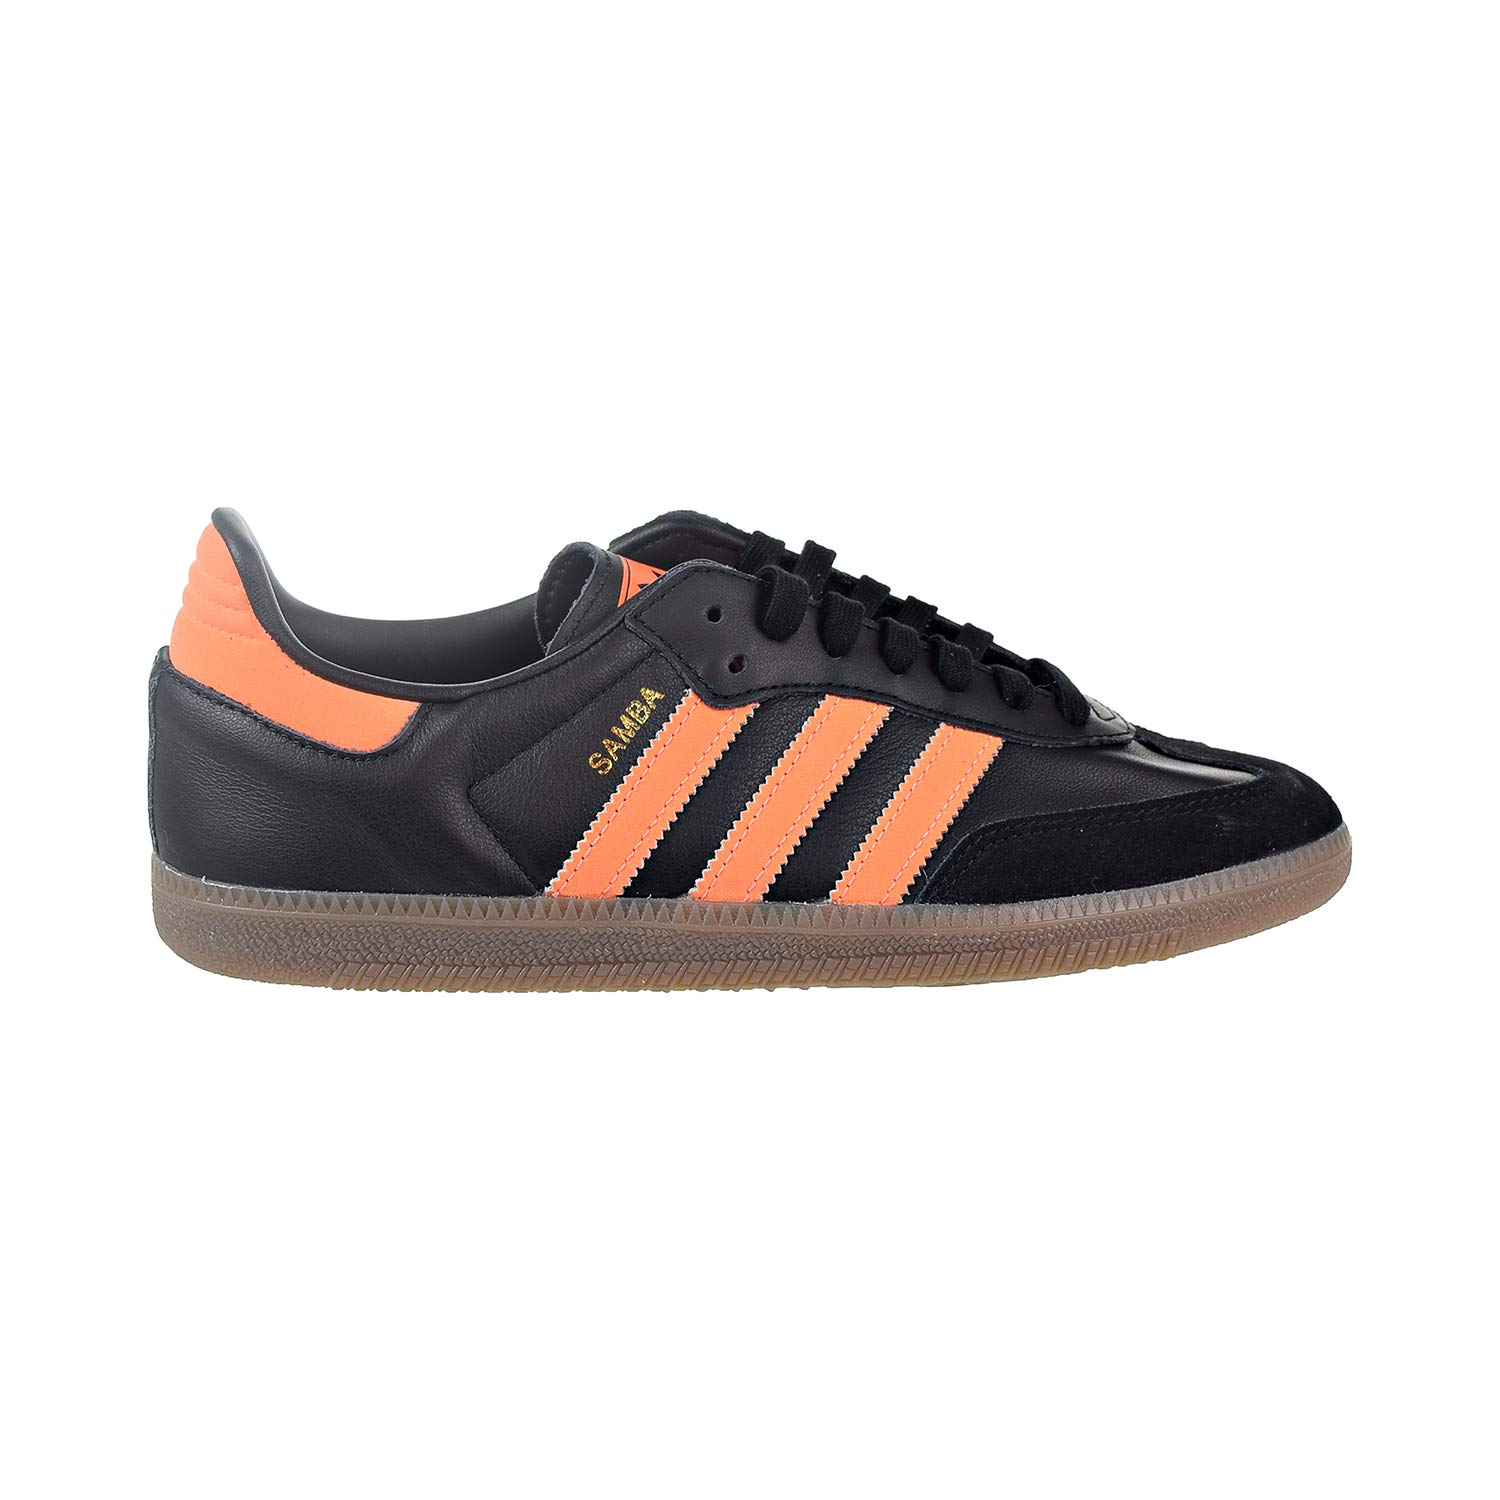 1d4e45bfc Core Black Hi-res orange orange orange gold Metalic adidas Men's Samba Og  Gymnastics shoes e5aa6c